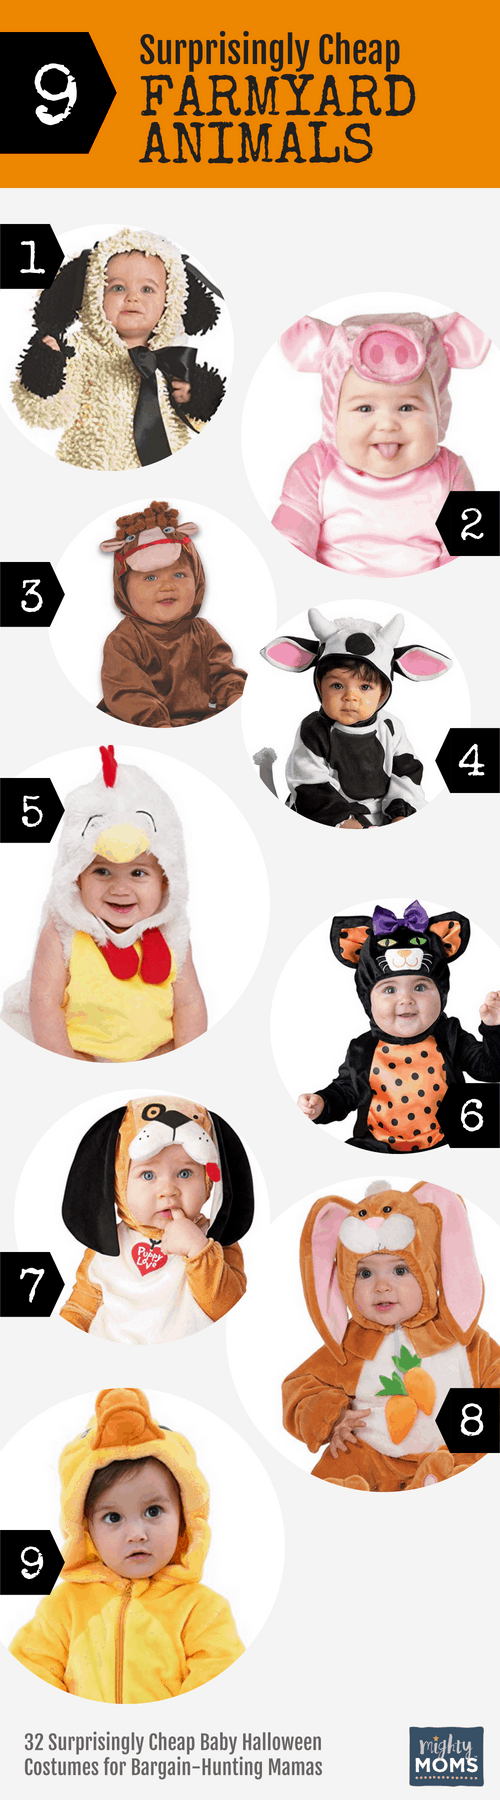 32 cheap baby halloween costumes for bargain-hunting mamas - updated